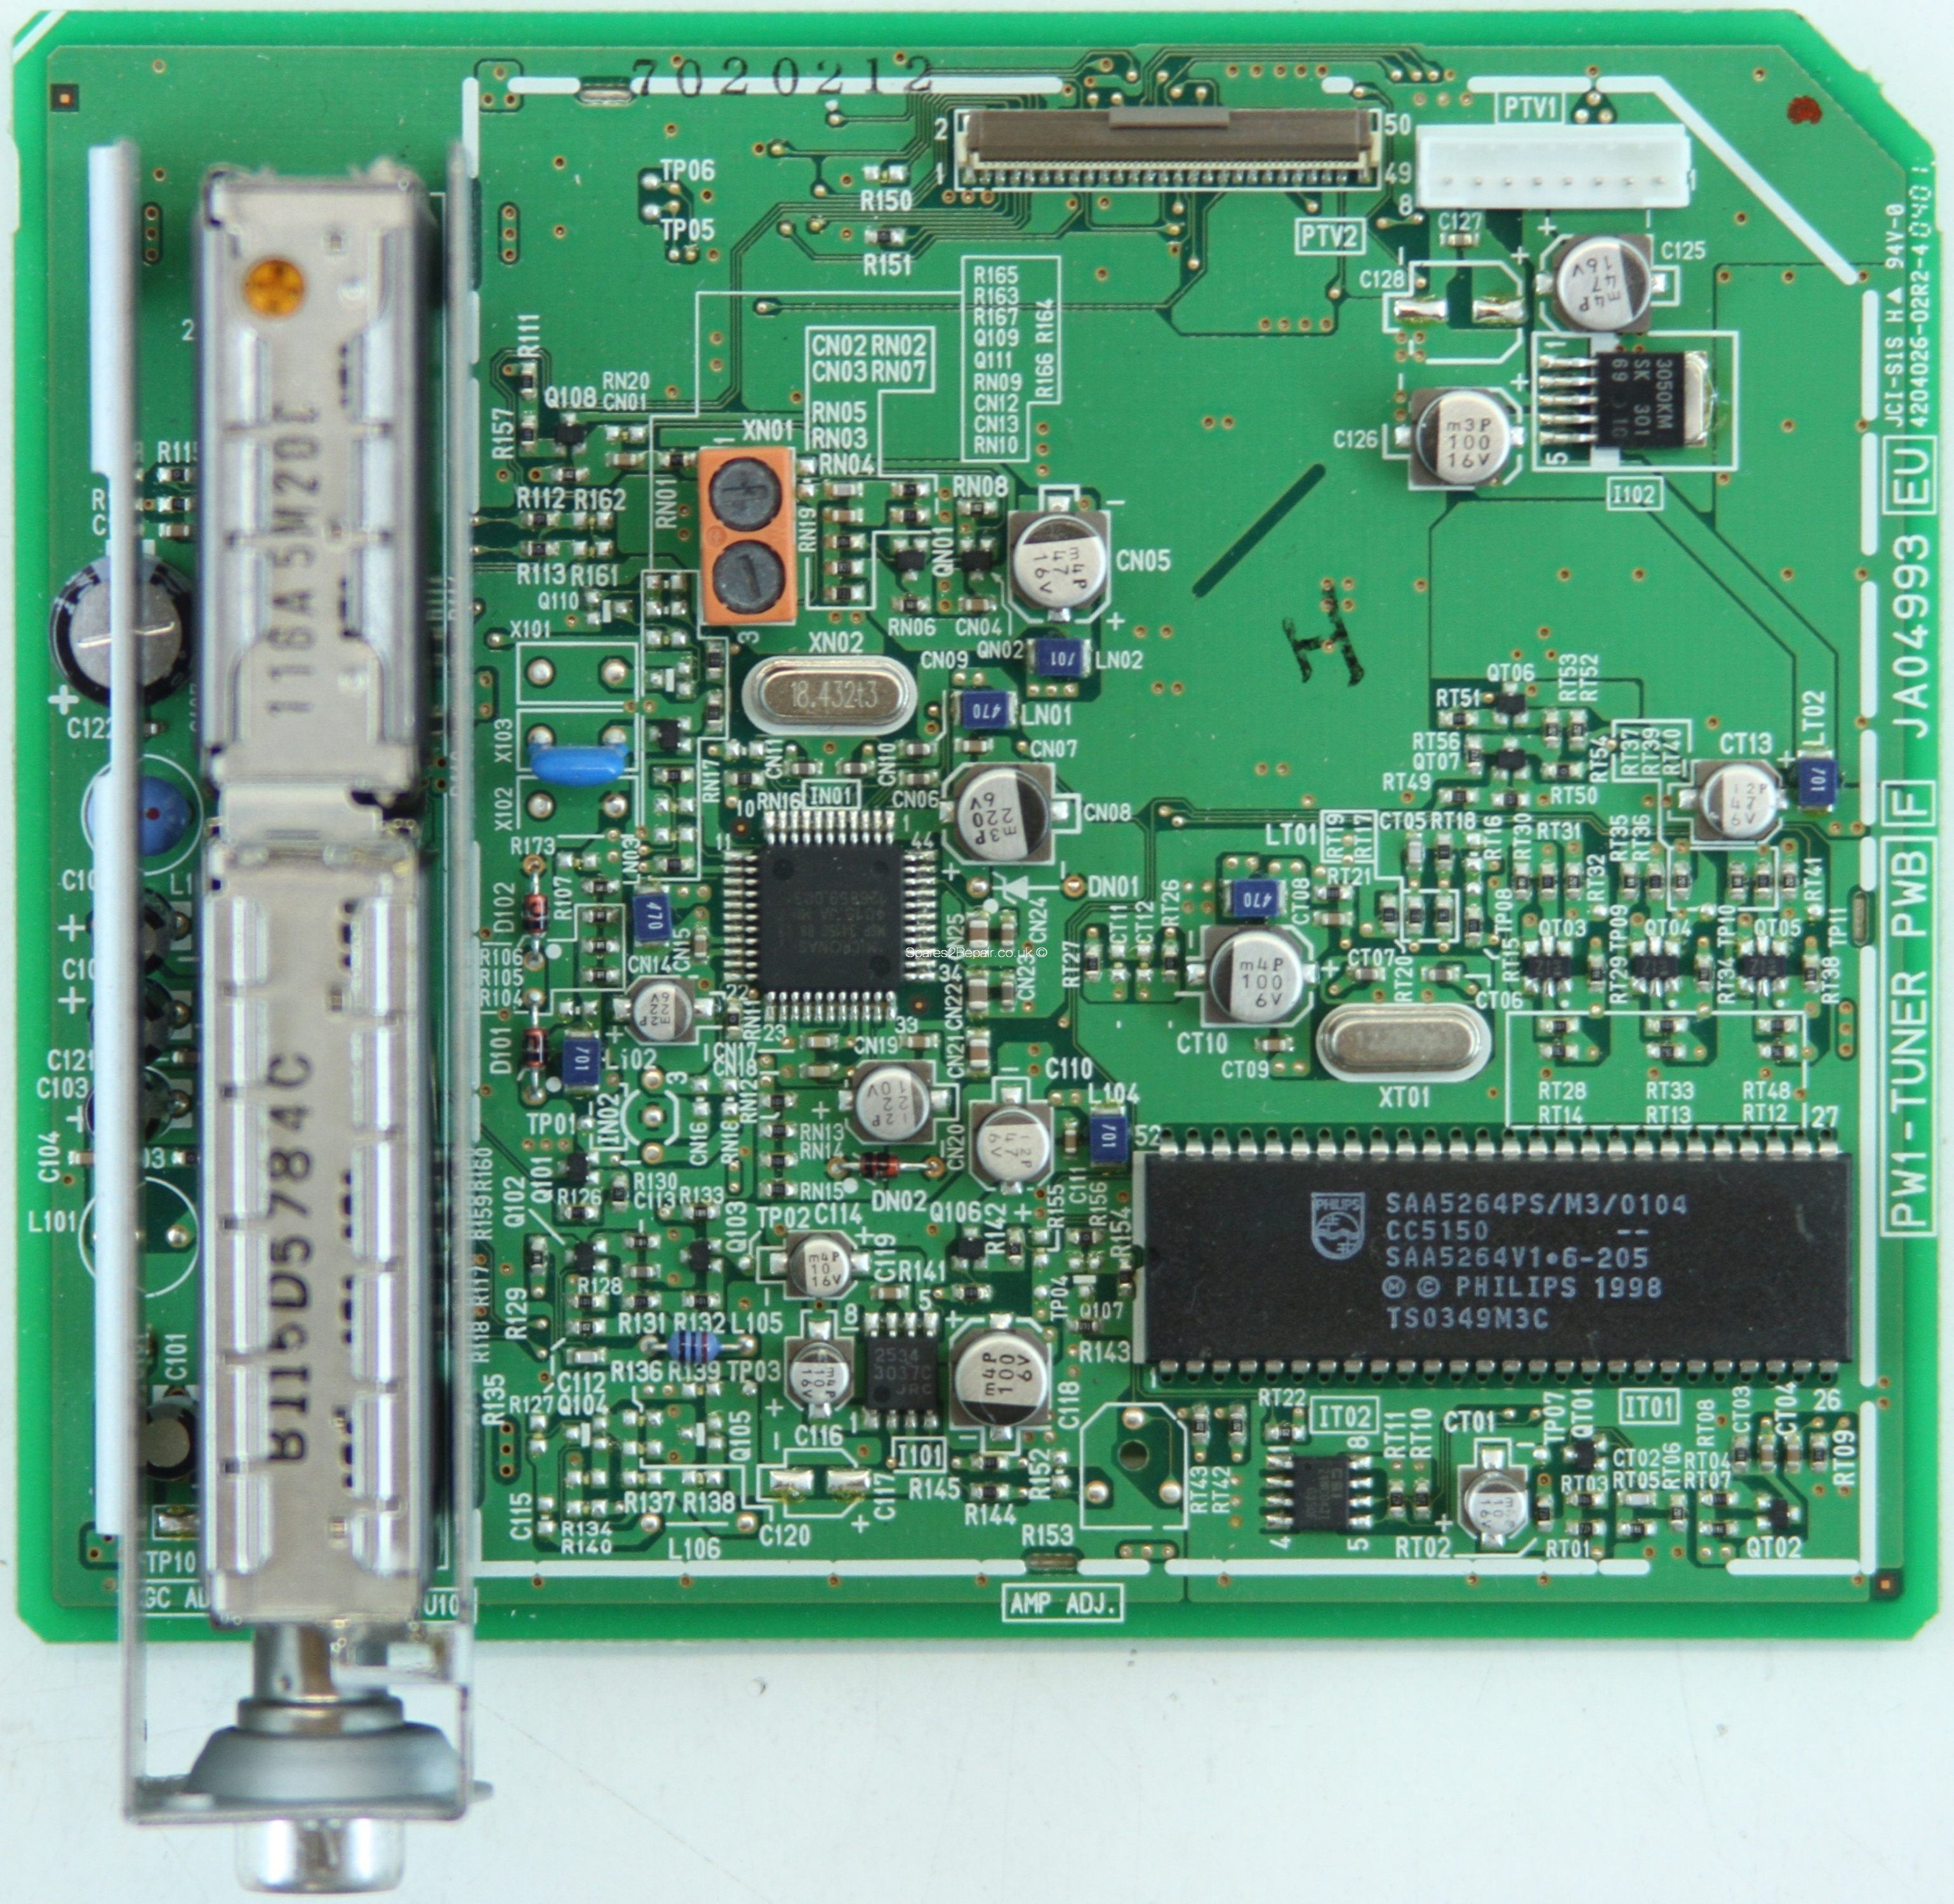 Hitachi 37PD5000 - Tuner Board - JA04993 - PW1-TUNER PWB